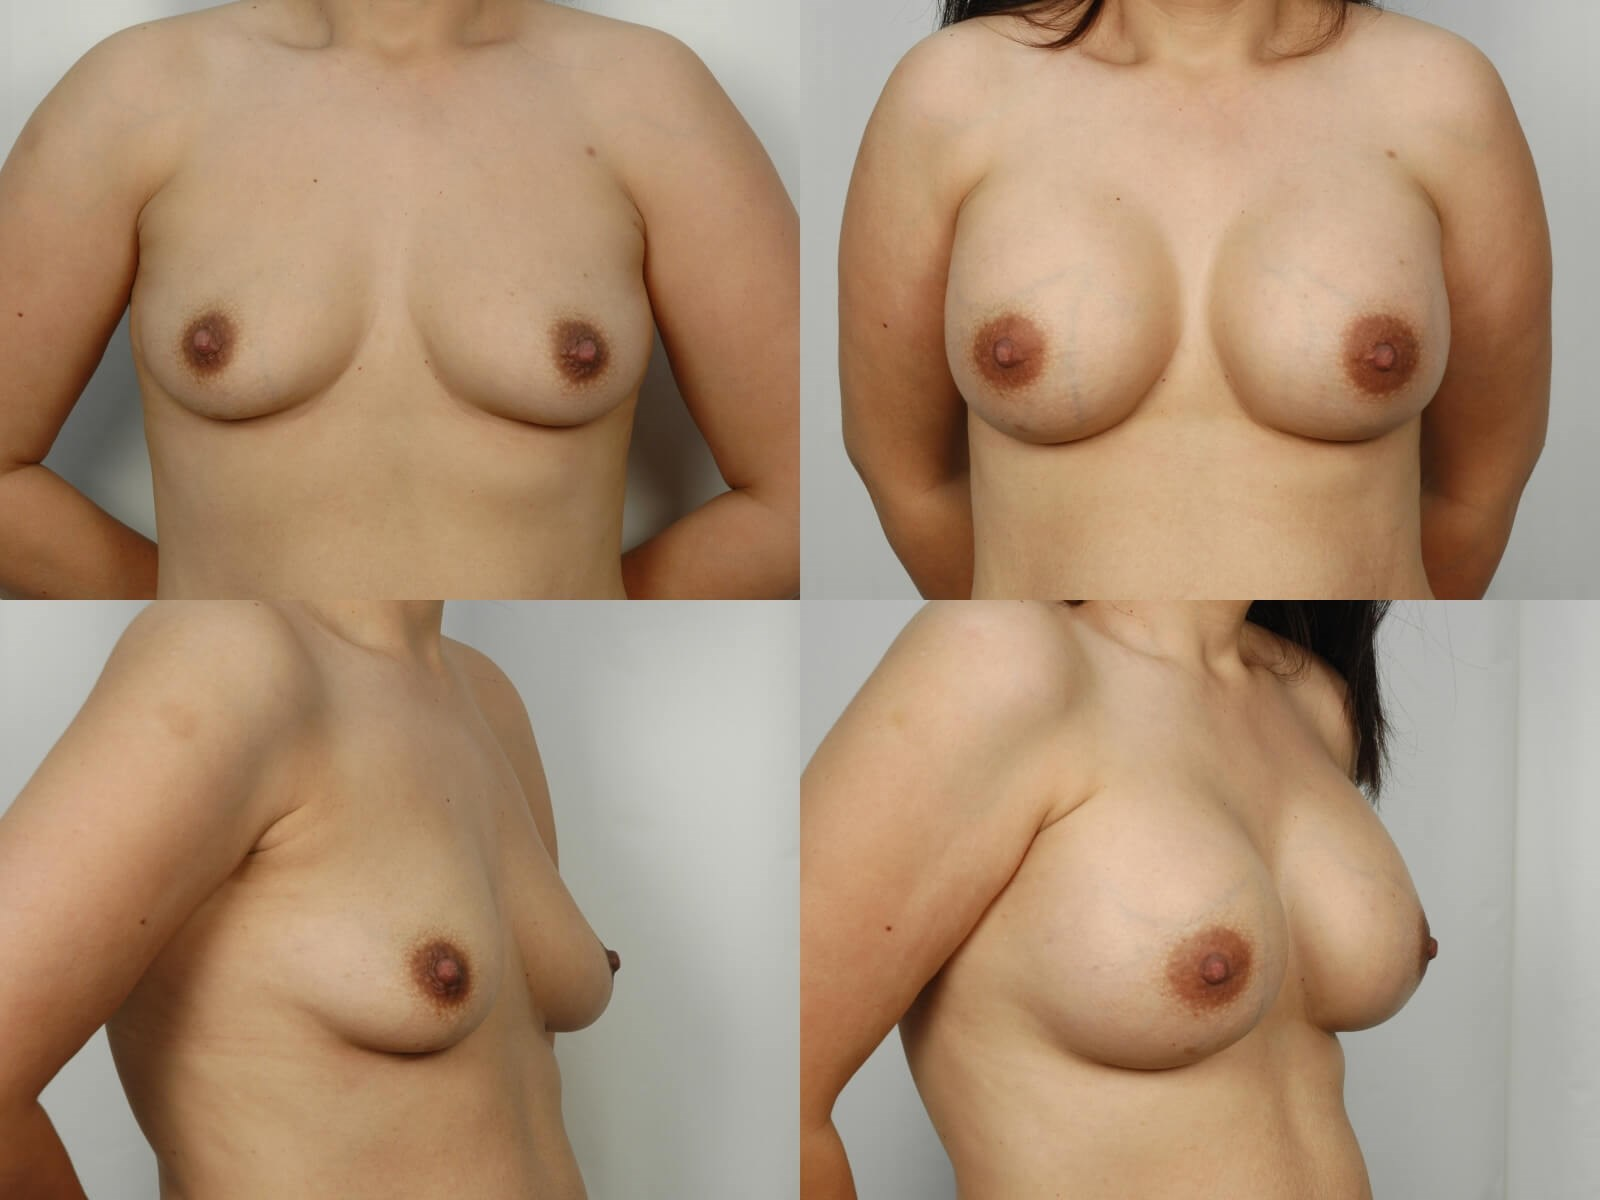 Breast Augmentation Houston After 1 month